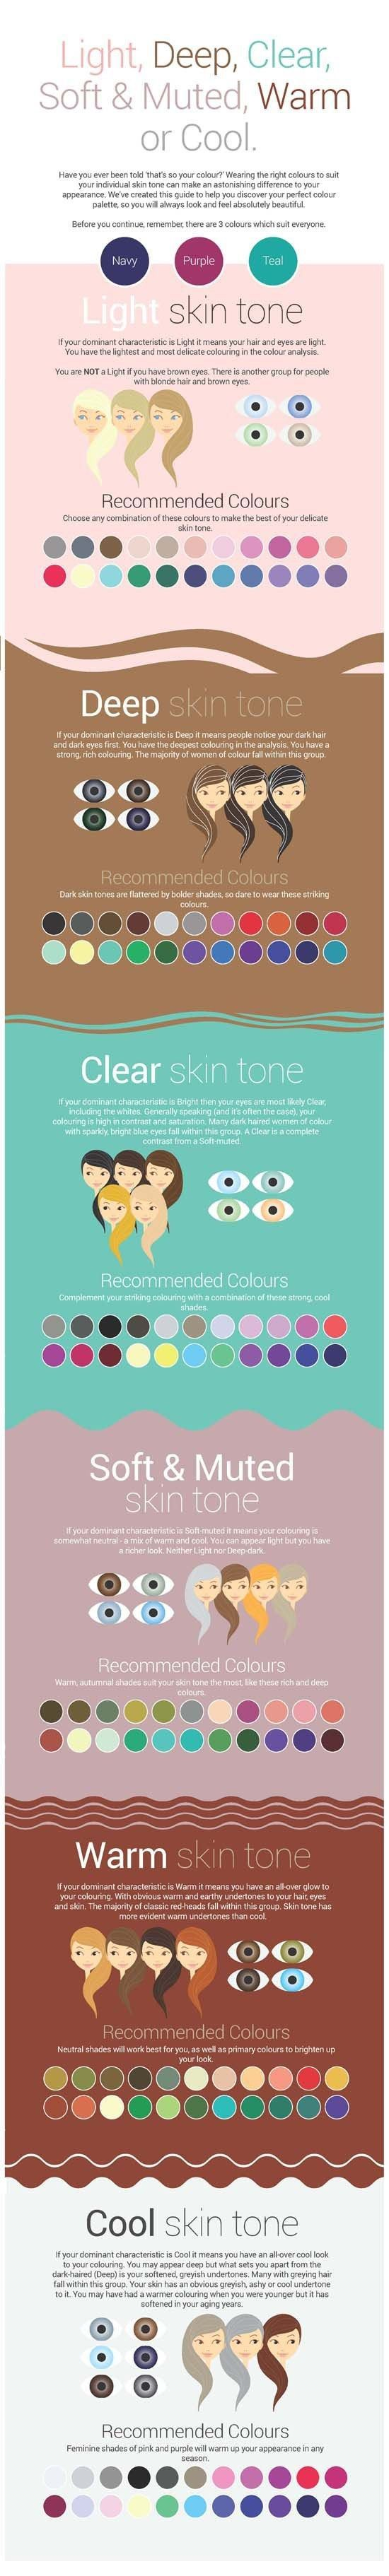 book color me beautiful : Choosing The Perfect Colors To Compliment Your Skin Tone